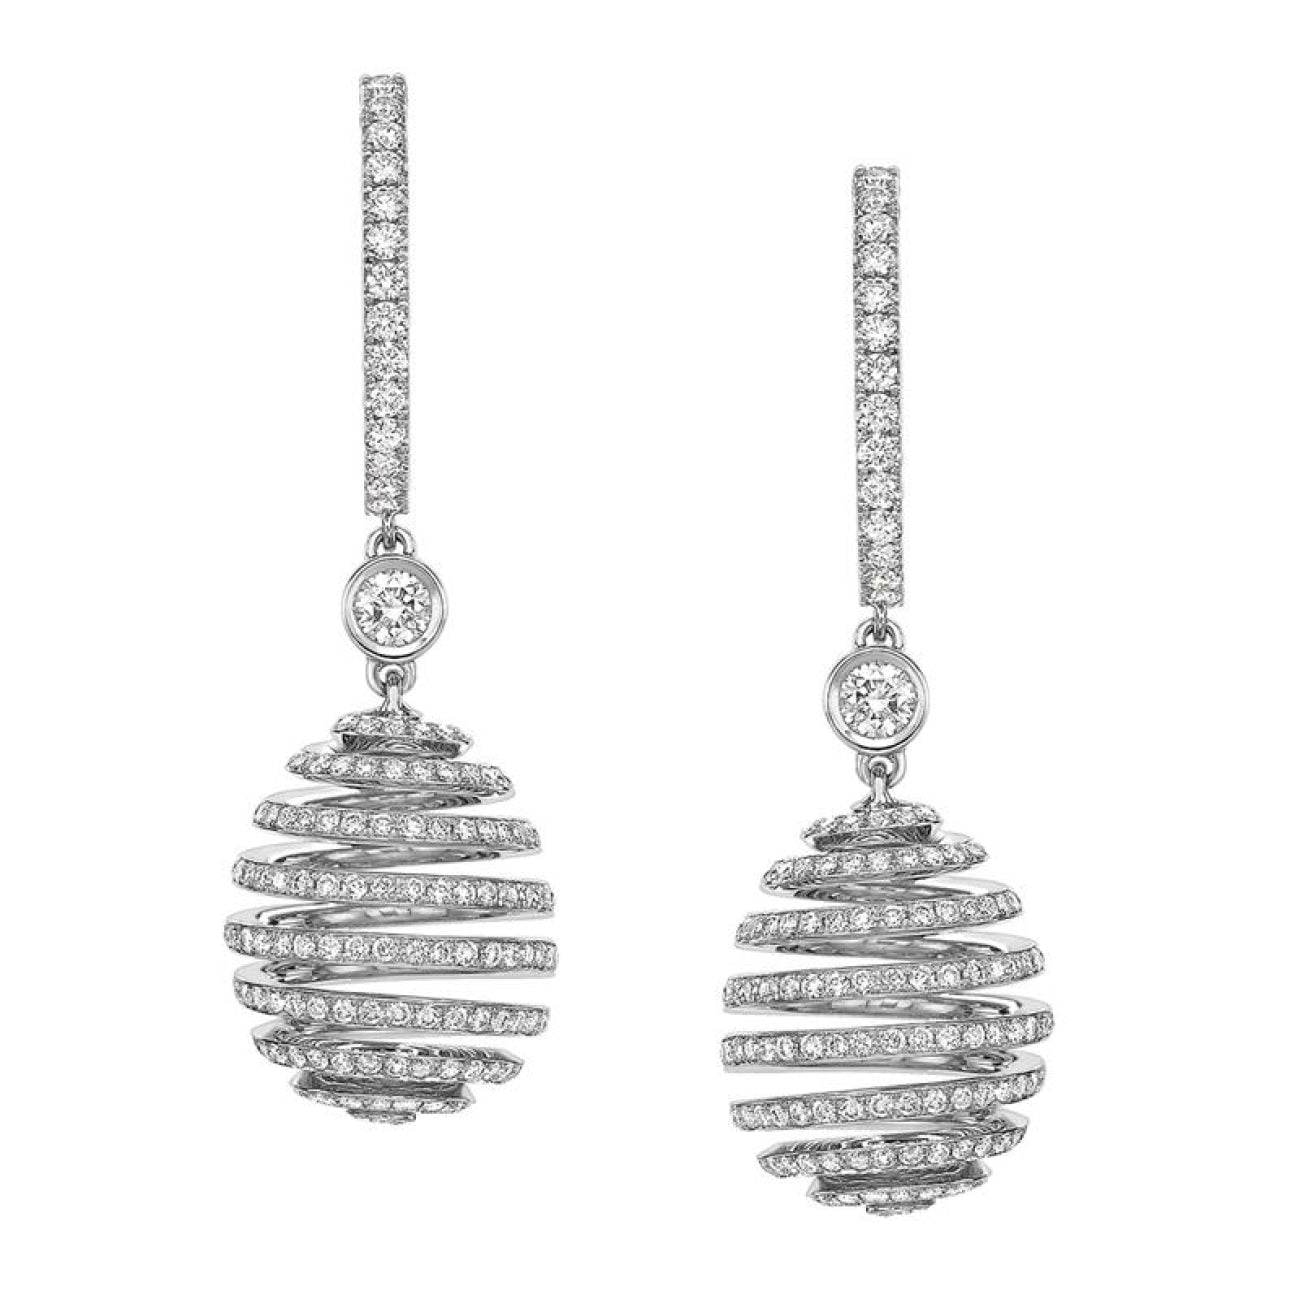 Fabergé Jewelry - Fabergé IMPERIAL 18K WHITE GOLD DIAMOND SPIRAL HOOP DROP EARRINGS | Manfredi Jewels